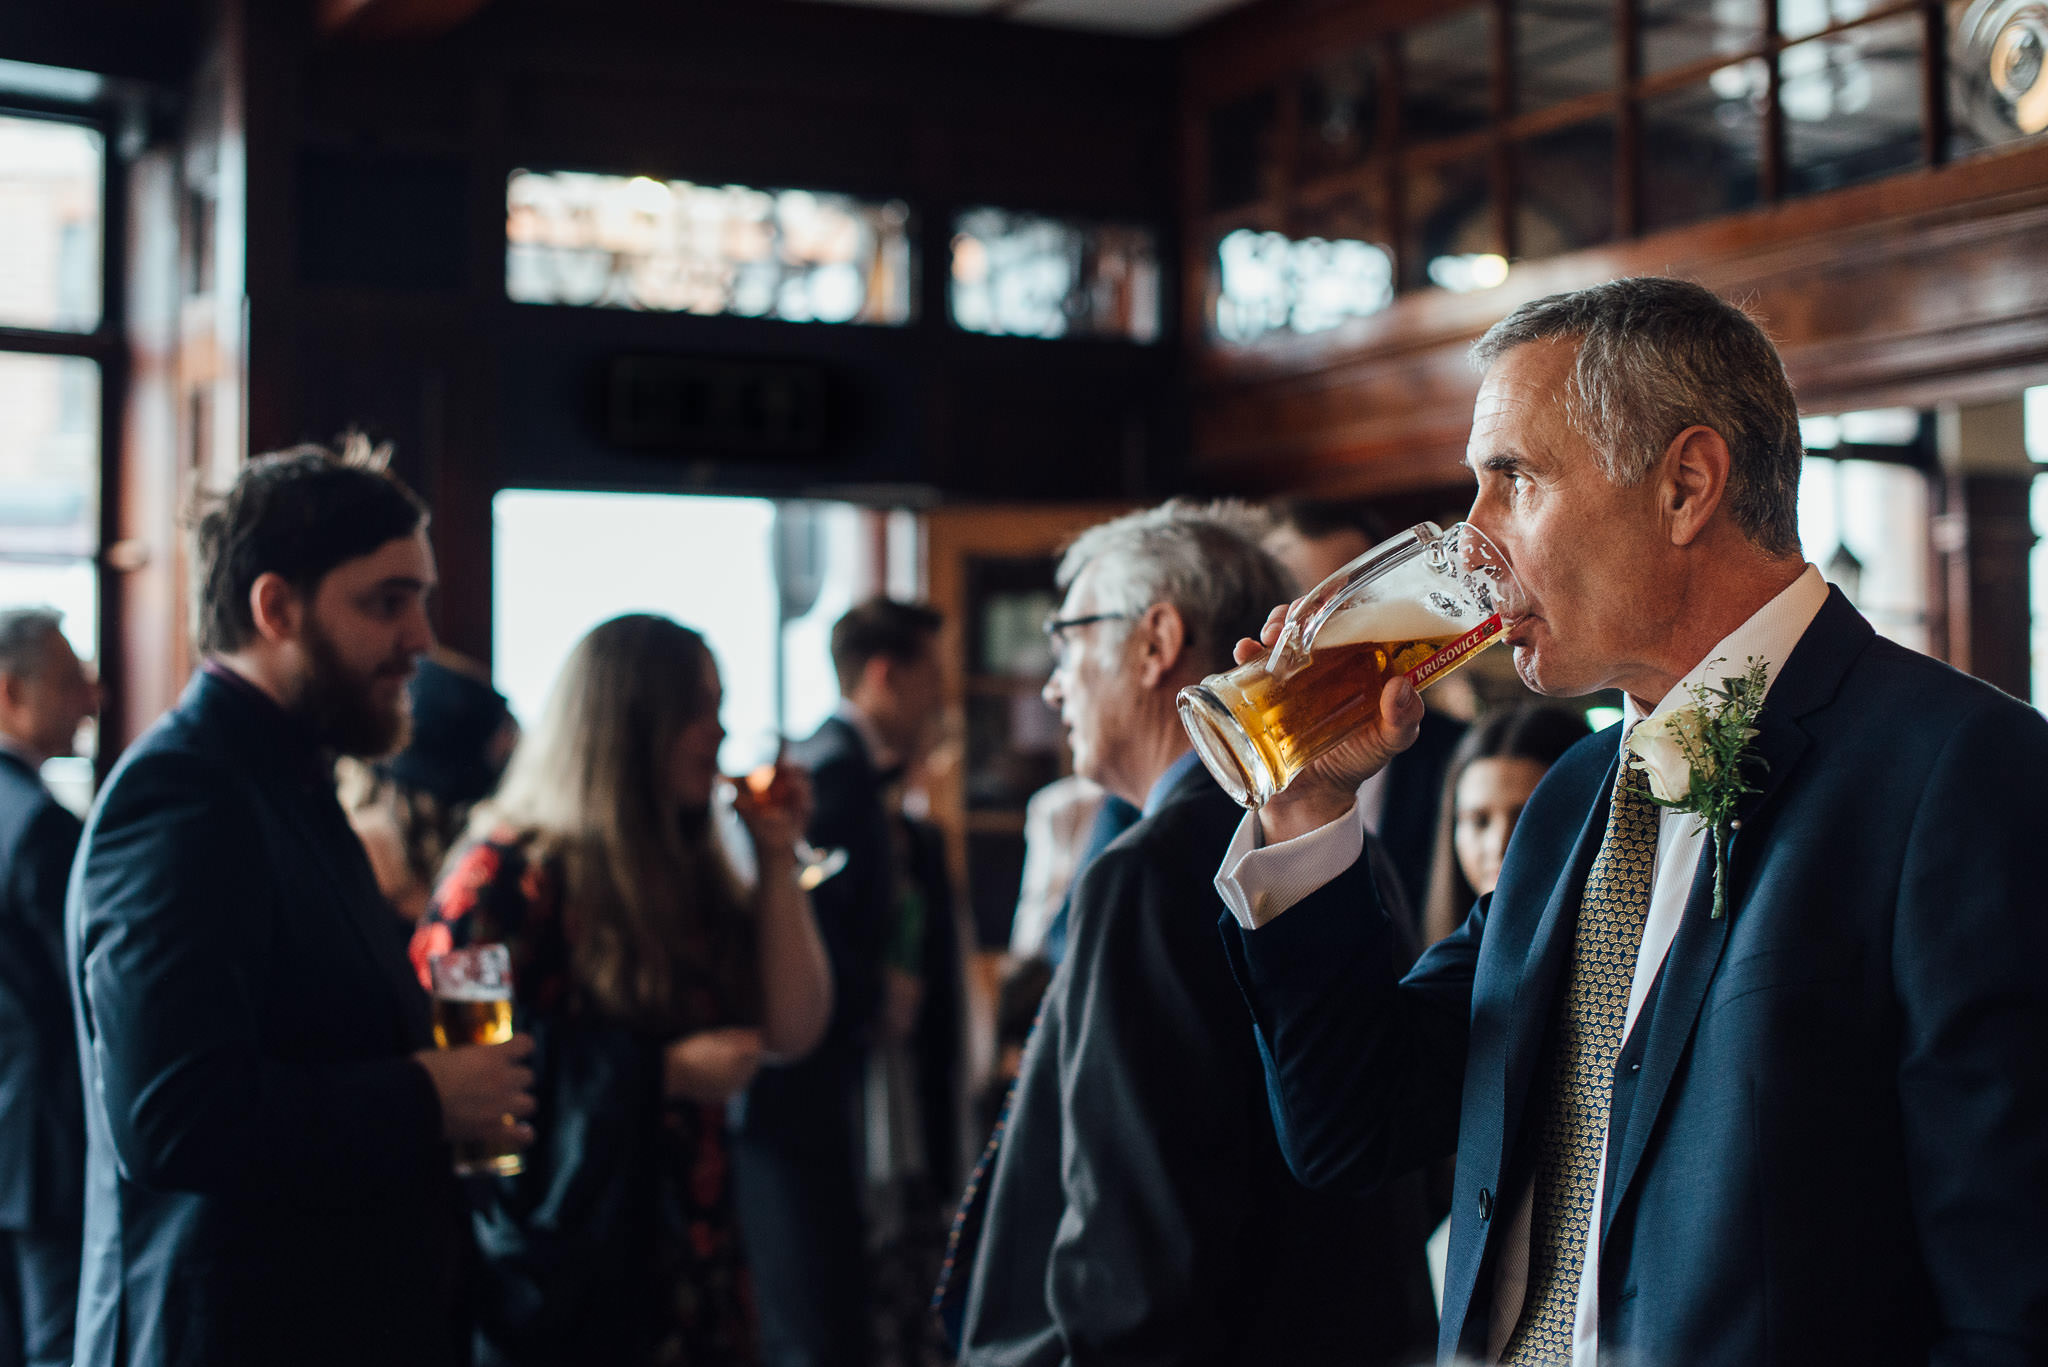 Guests drinking in the rose and crown pub in stoke newington town hall wedding by creative and alternative london wedding photographer the shannons photography